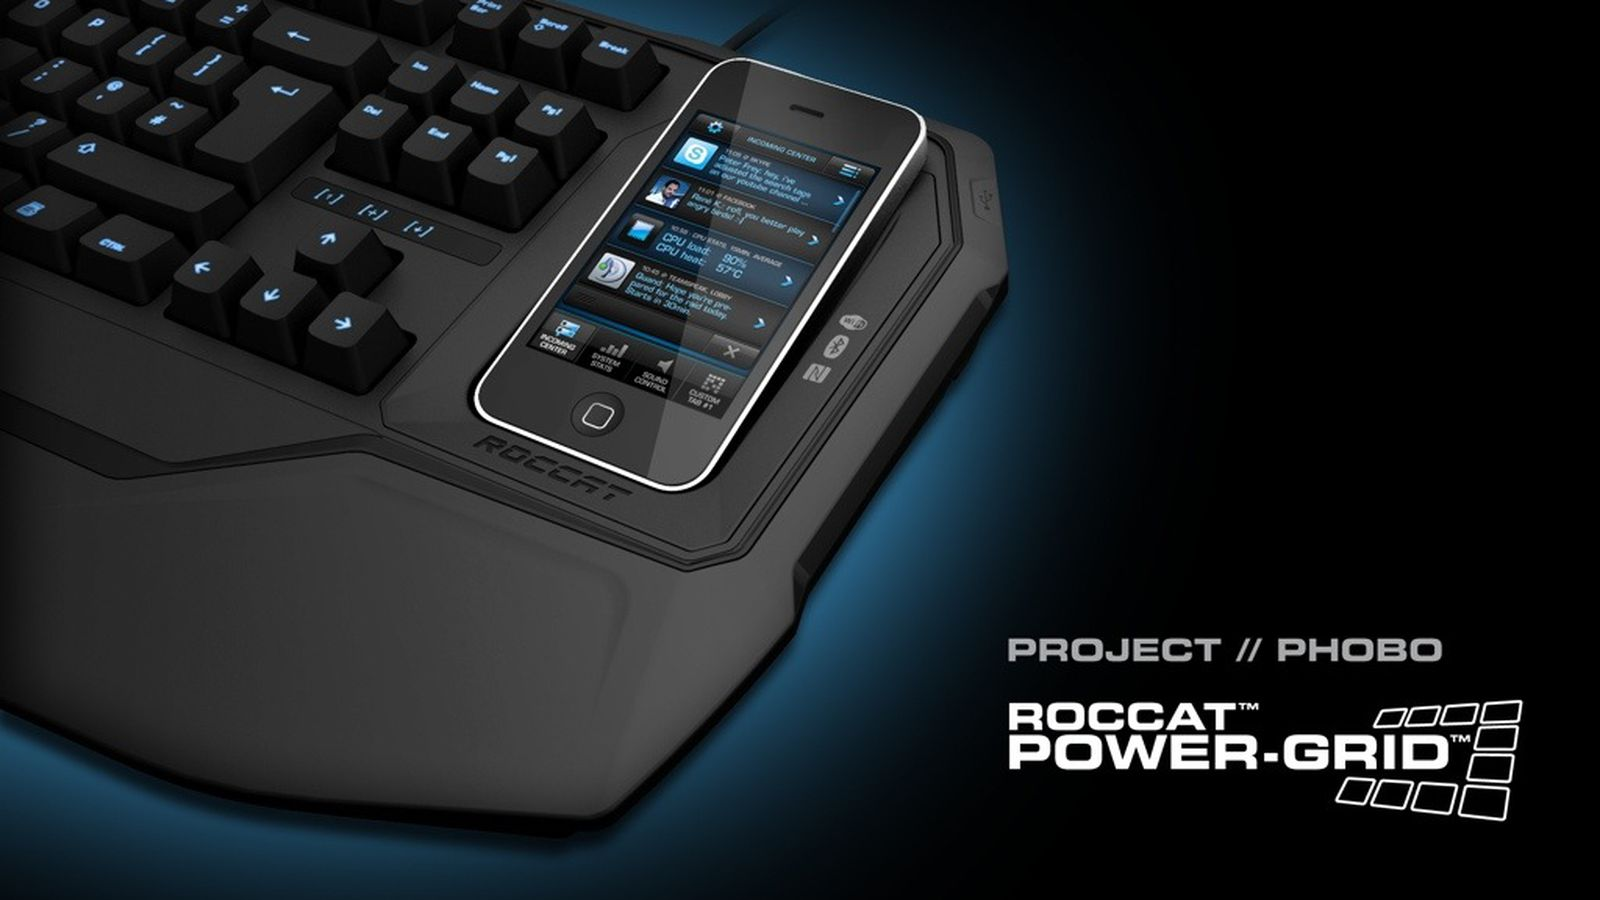 Iphone X The Verge Wallpaper Roccat Power Grid Turns Your Smartphone Into A Secondary